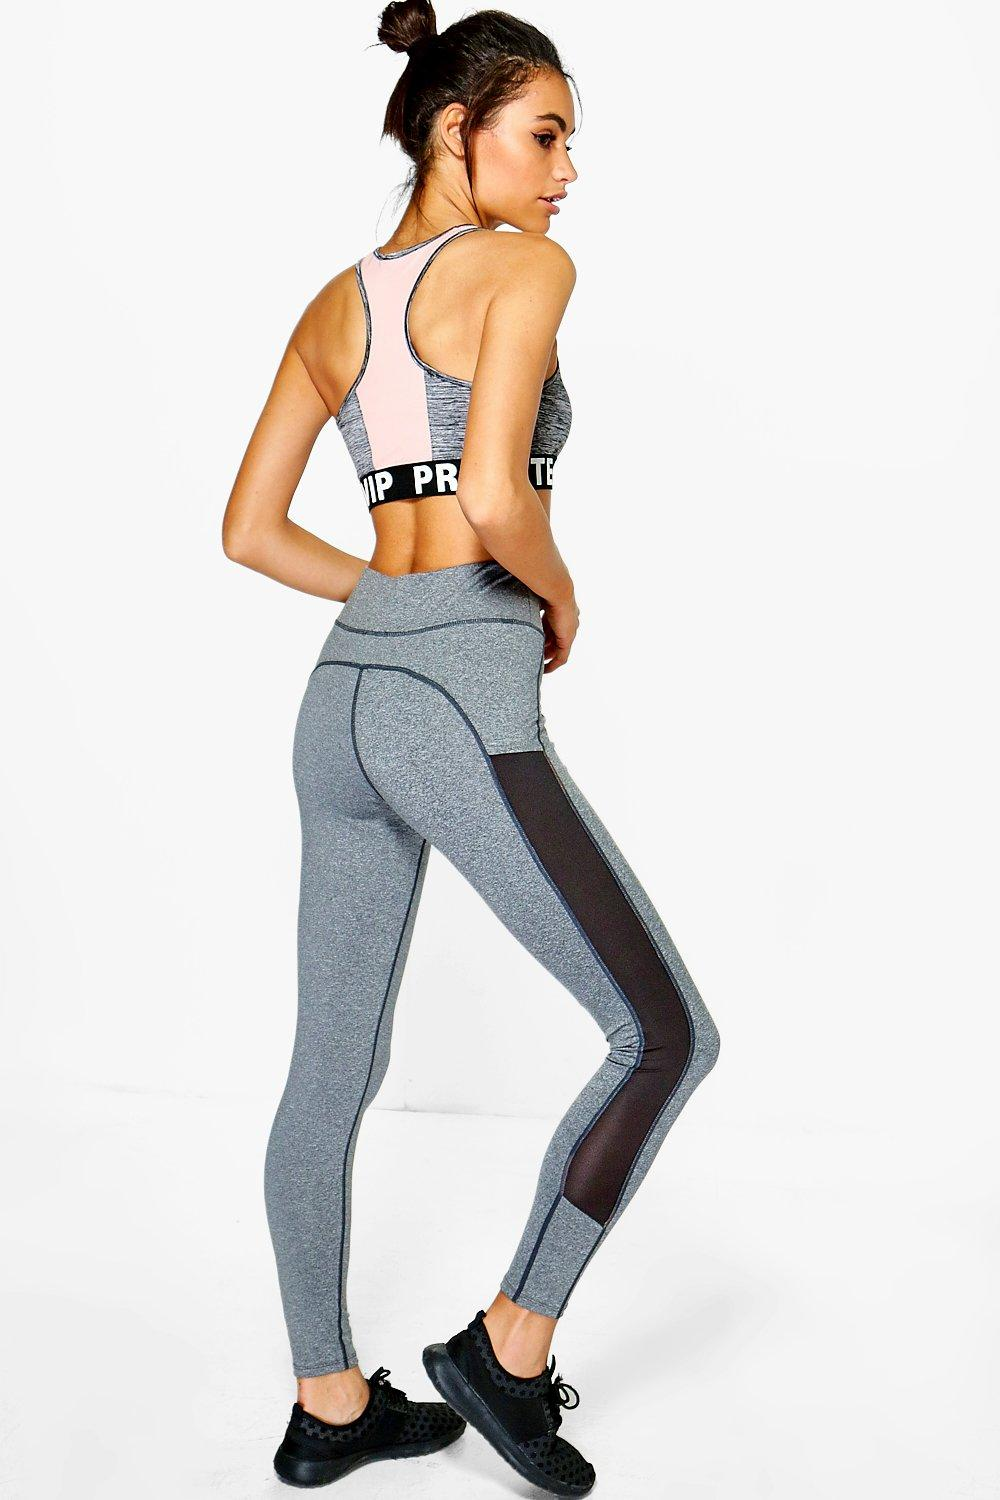 Mollie Fit Mesh Insert Running Legging grey